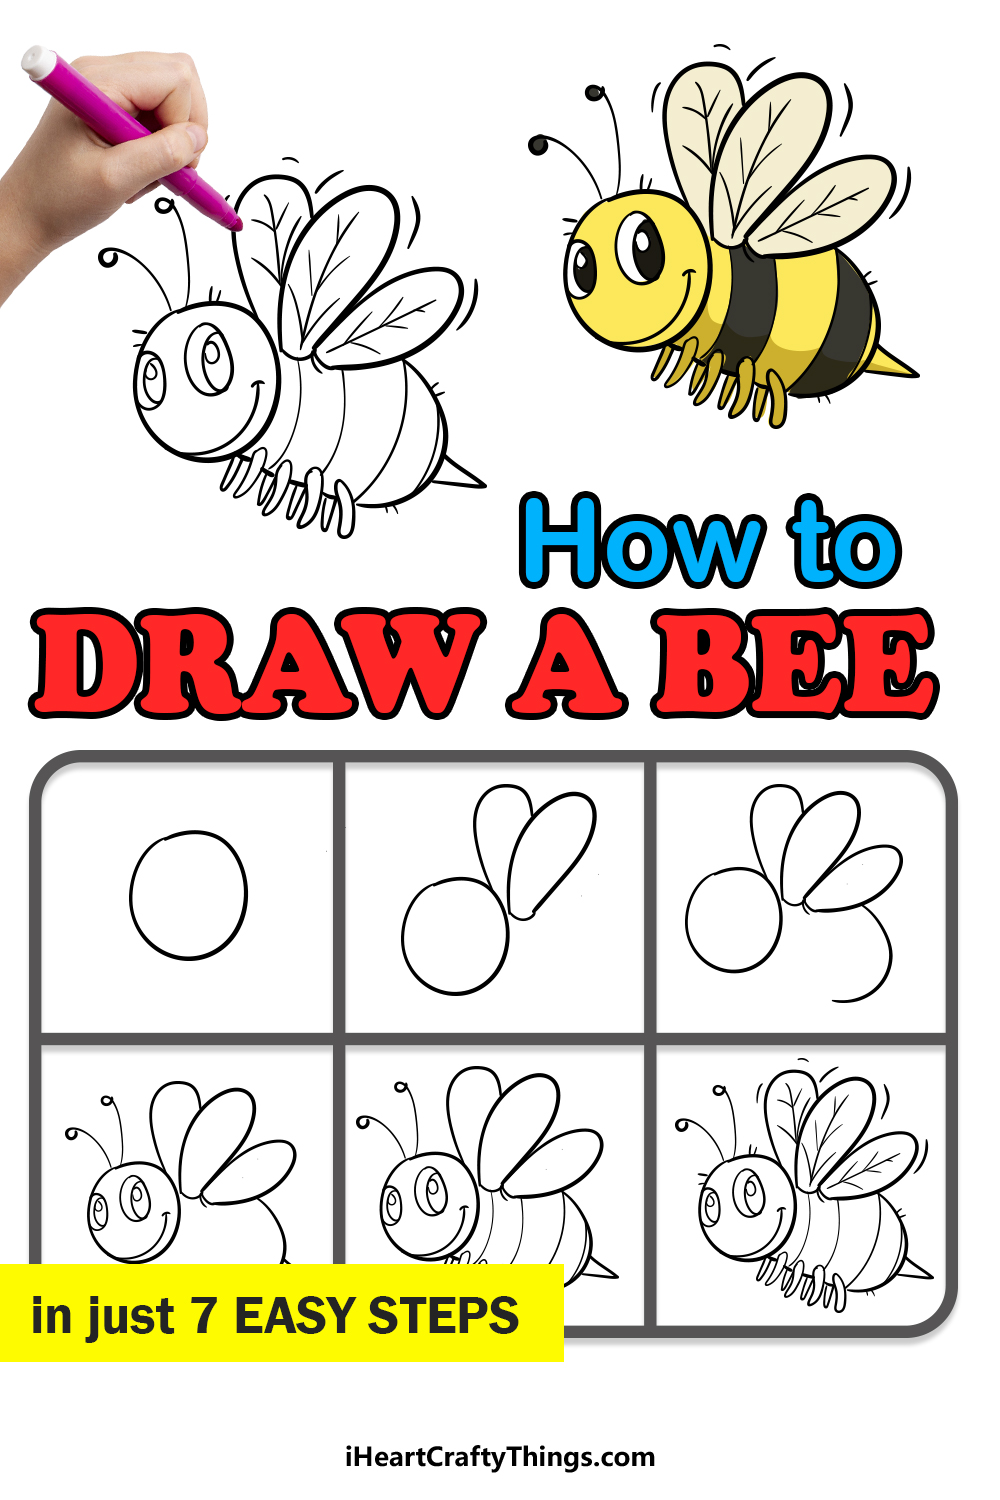 how to draw a bee in 7 easy steps